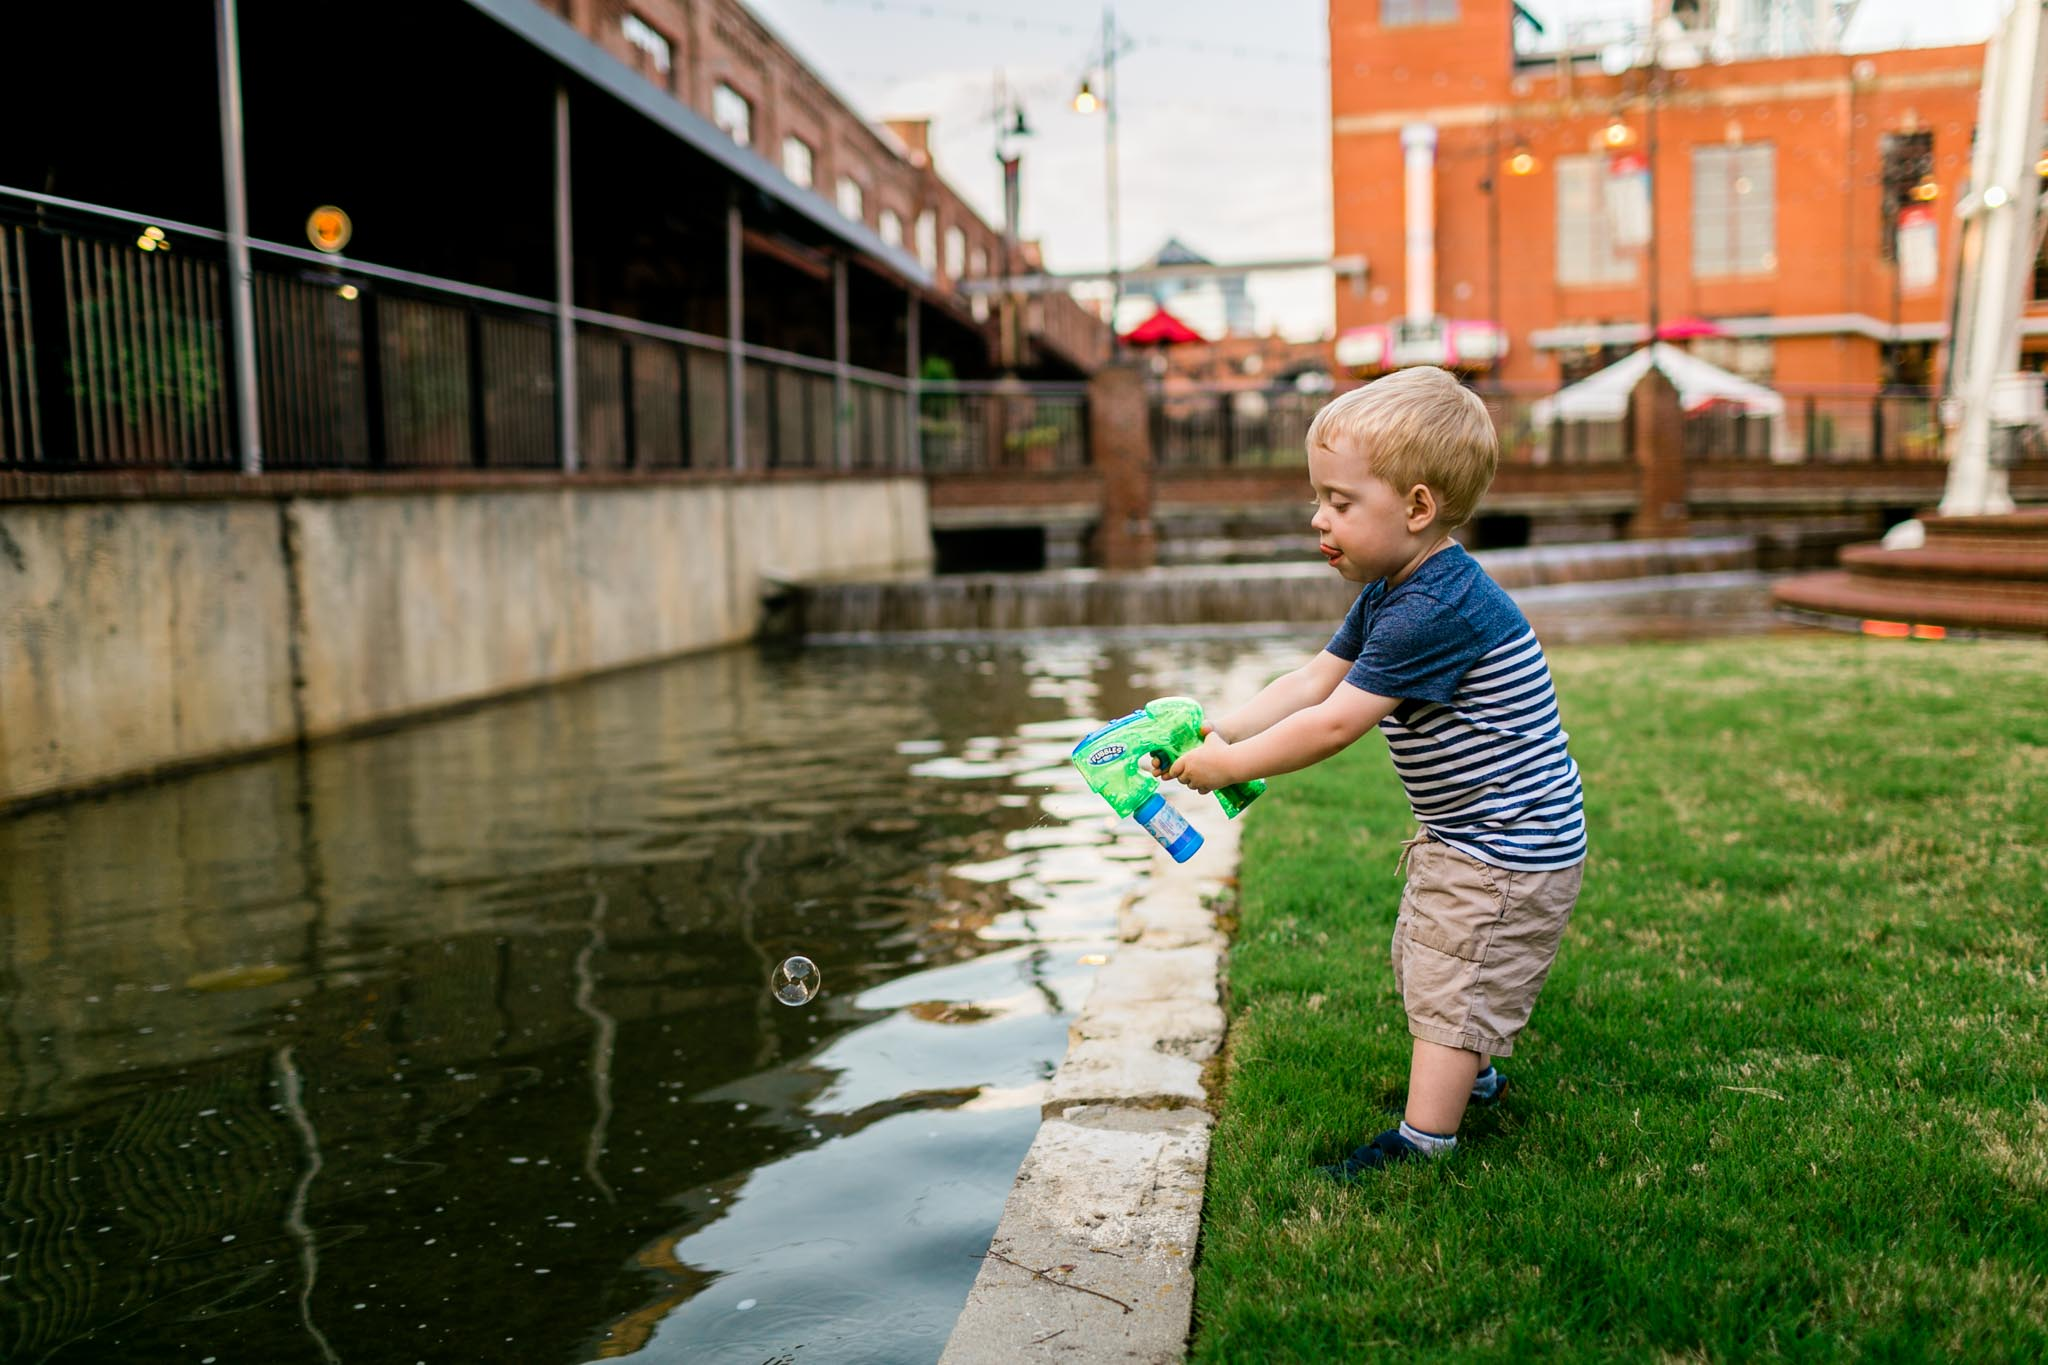 Durham Family and Children Photographer | Boy spraying bubbles | By G. Lin Photography